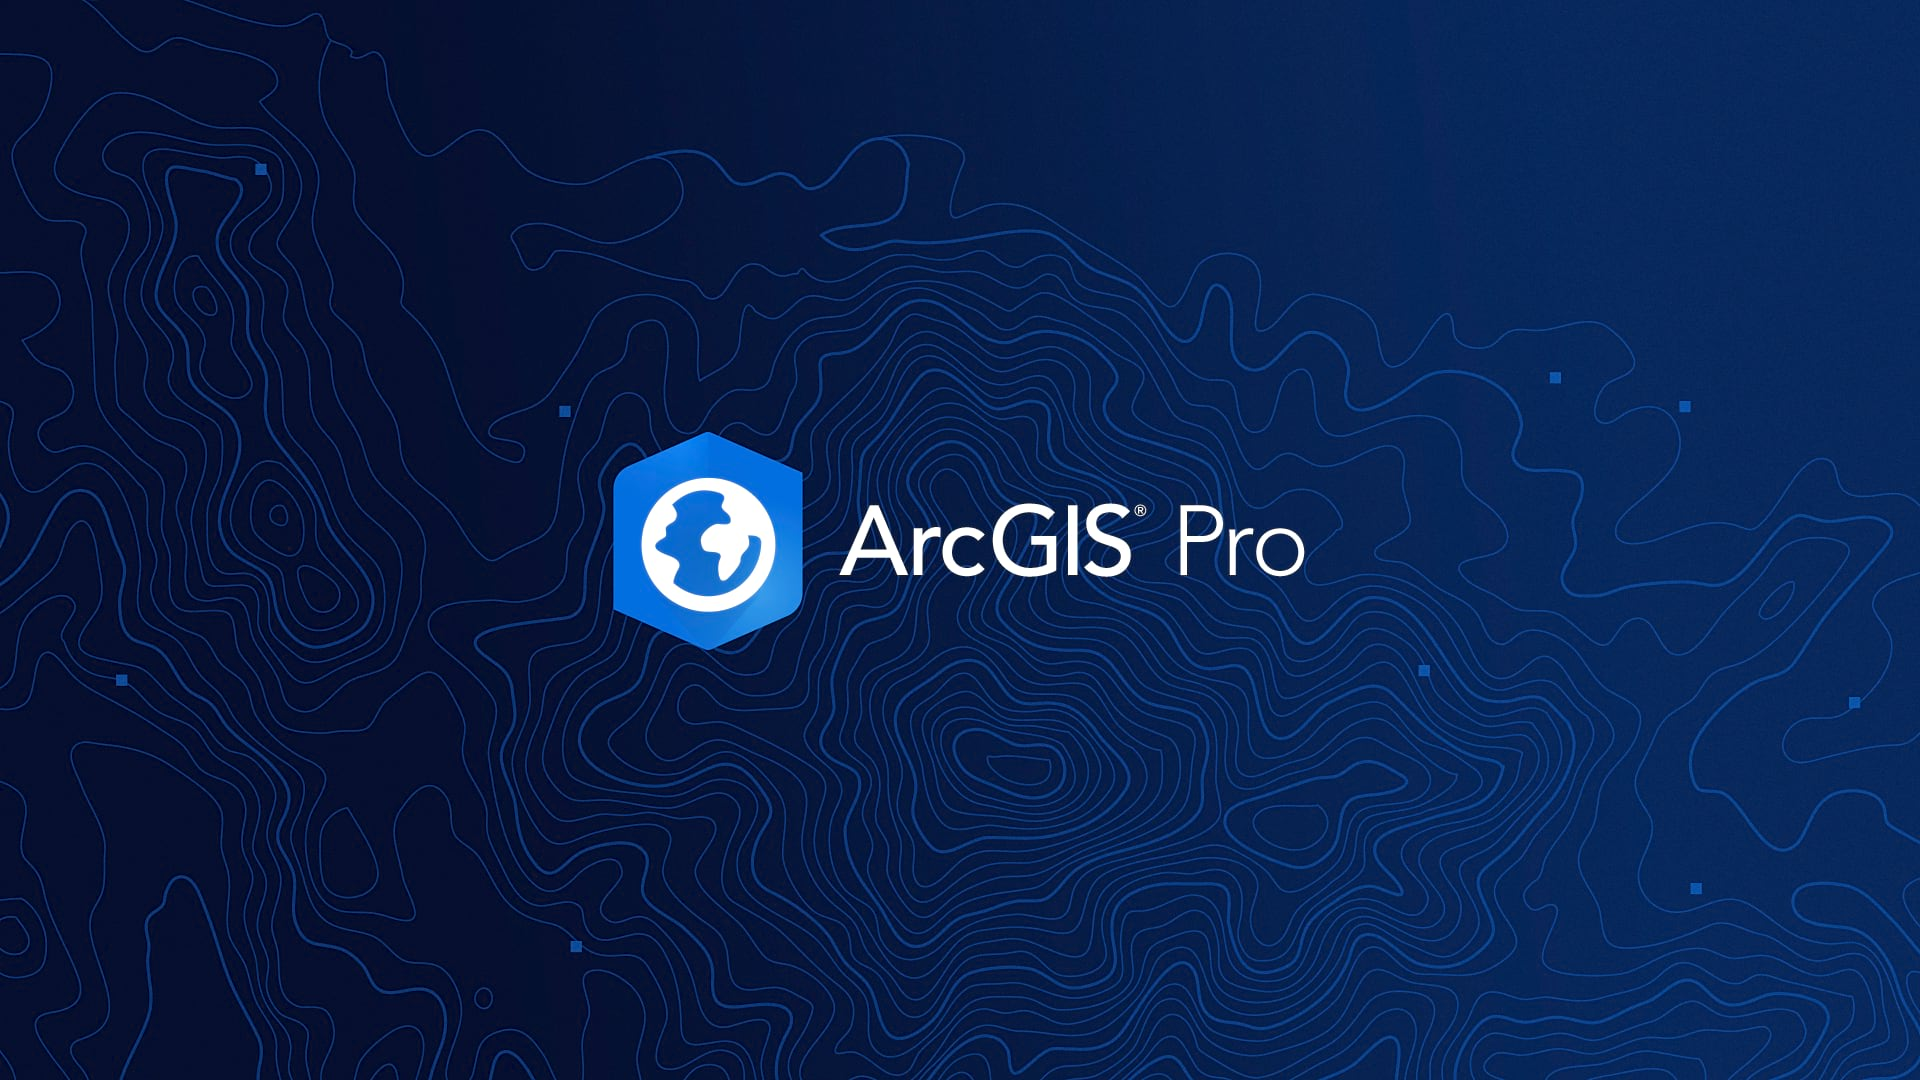 20-arcgis-pro-email-newsletter-images-blog-1920x1080-fnl